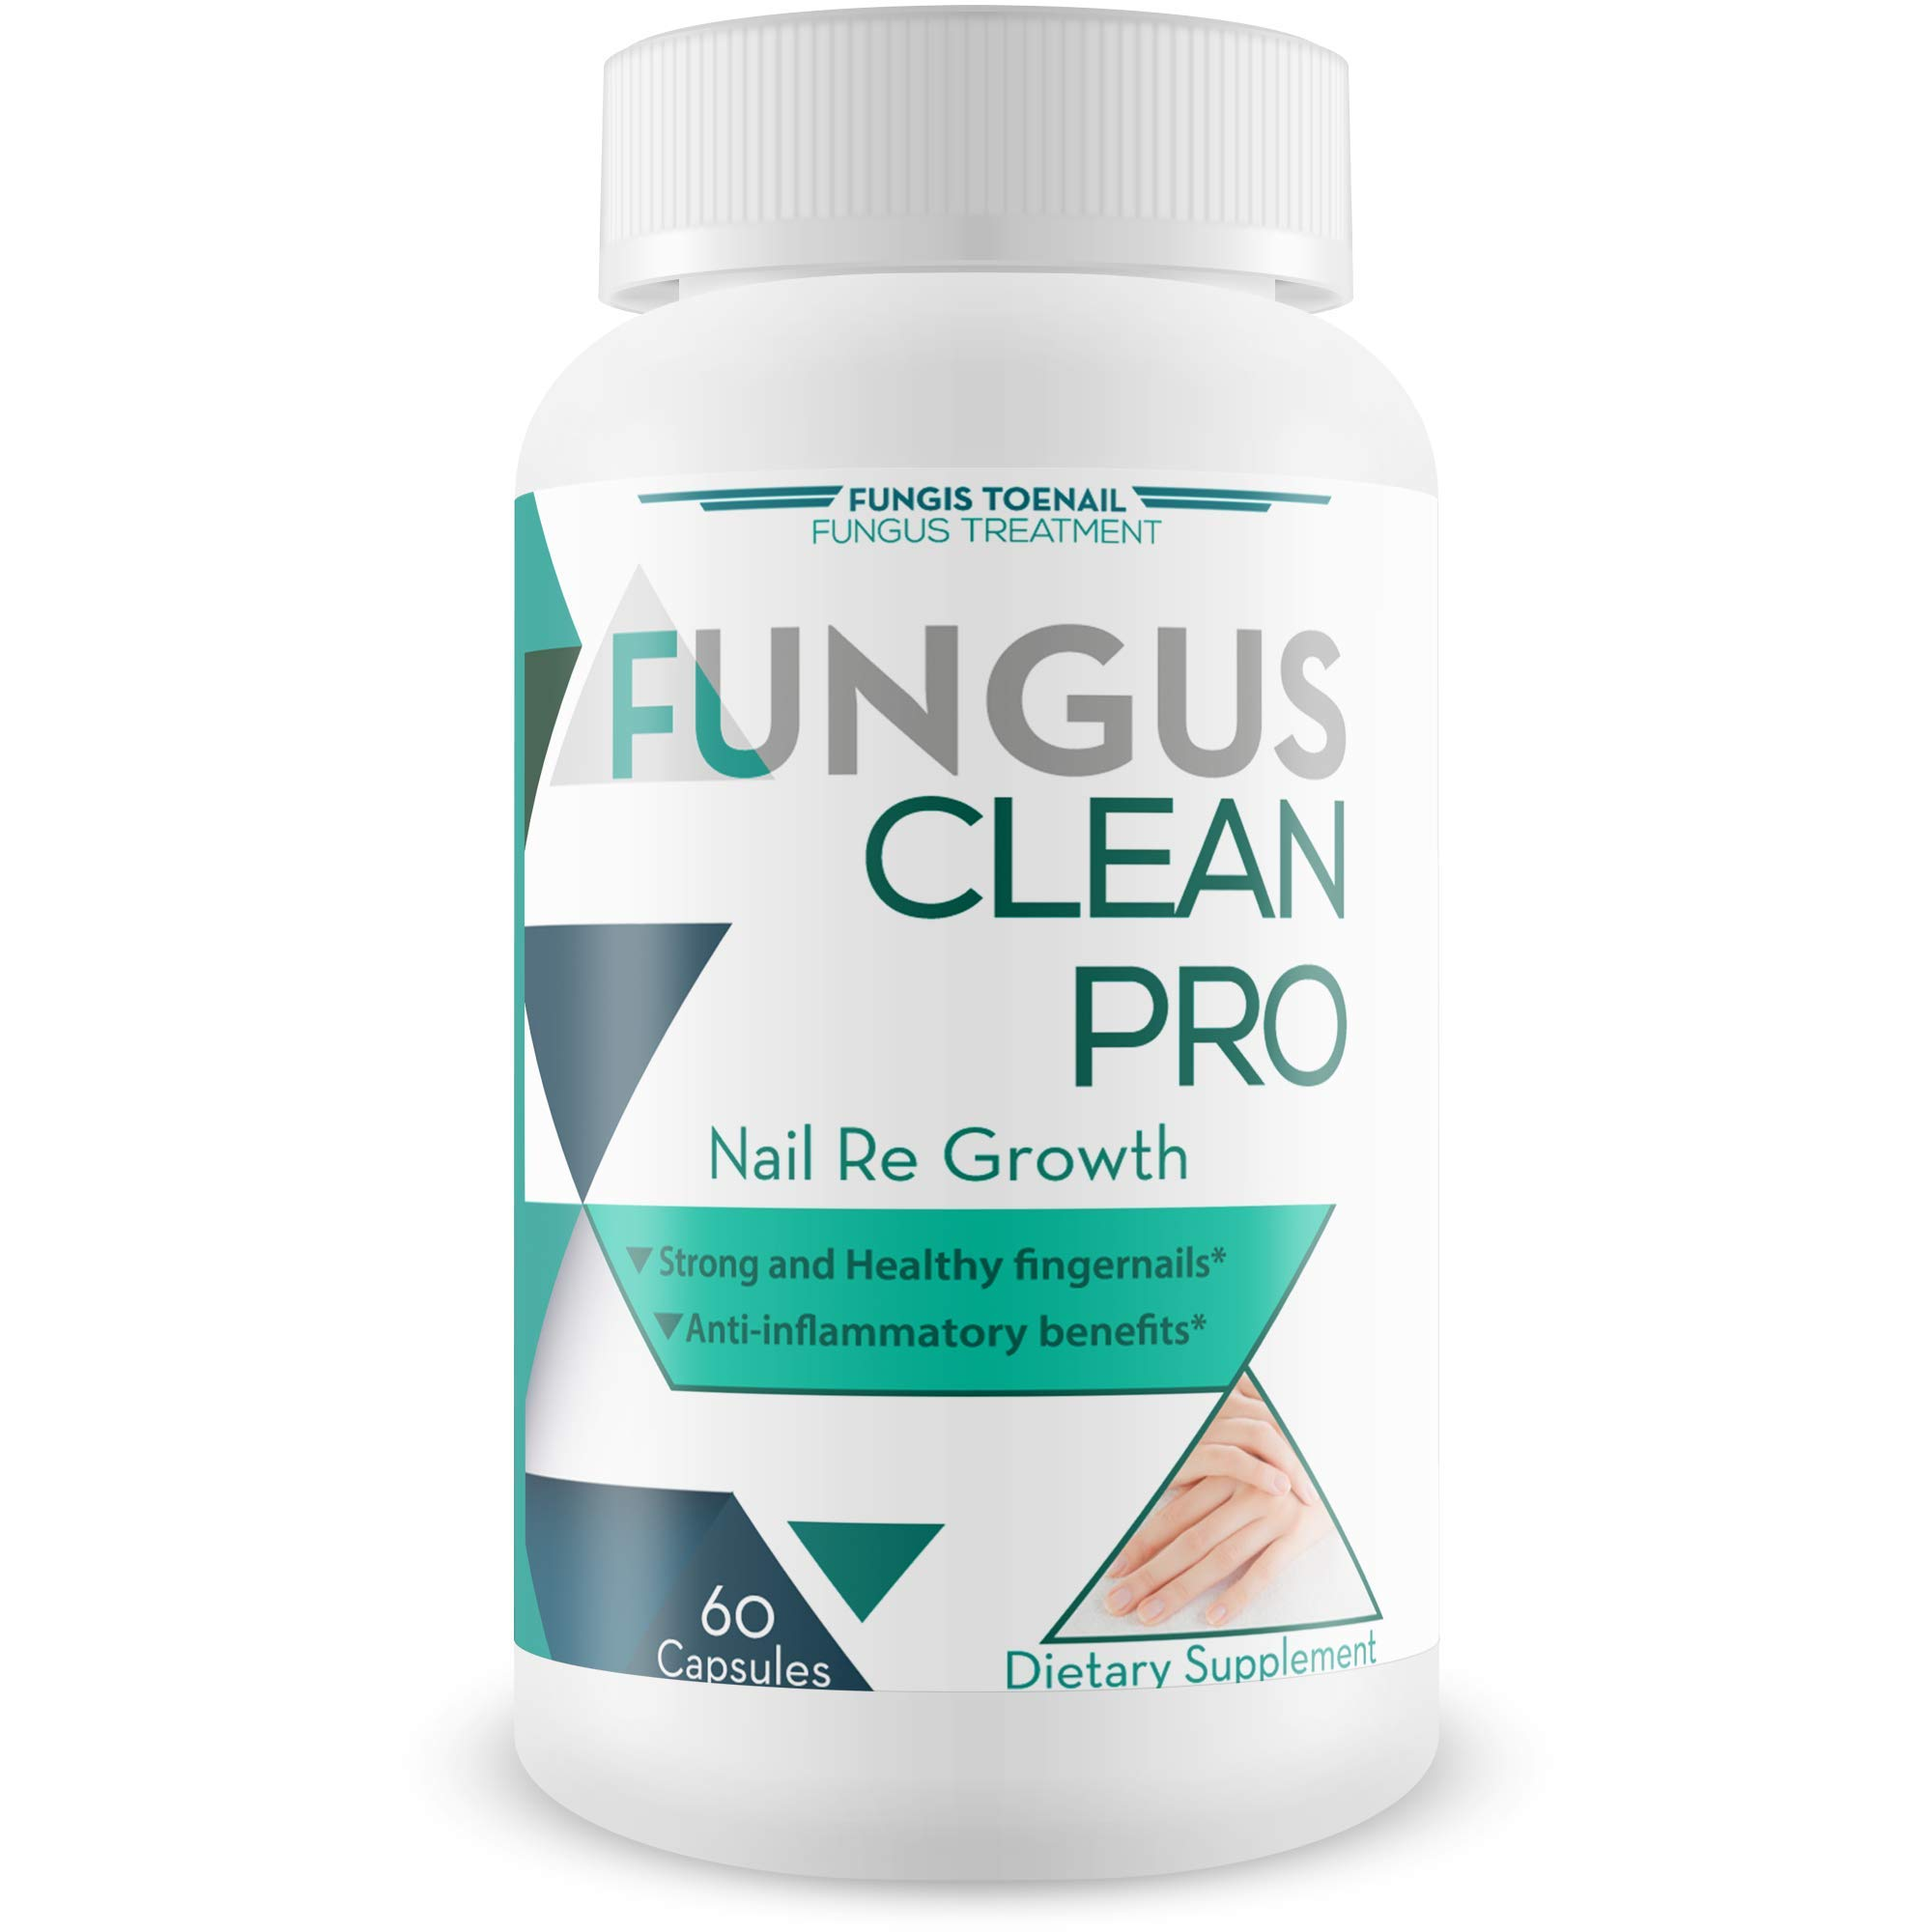 Fungus Clean Pro - Nail Re Growth - Fungal Damage Recovery Blend - Strong and Healthy Nails - Anti Inflammatory Benefits - Restore Strong, Clear, and Thick Nails - Vitamin and Mineral Nail Blend by Fungis Toenail Fungus Treatment